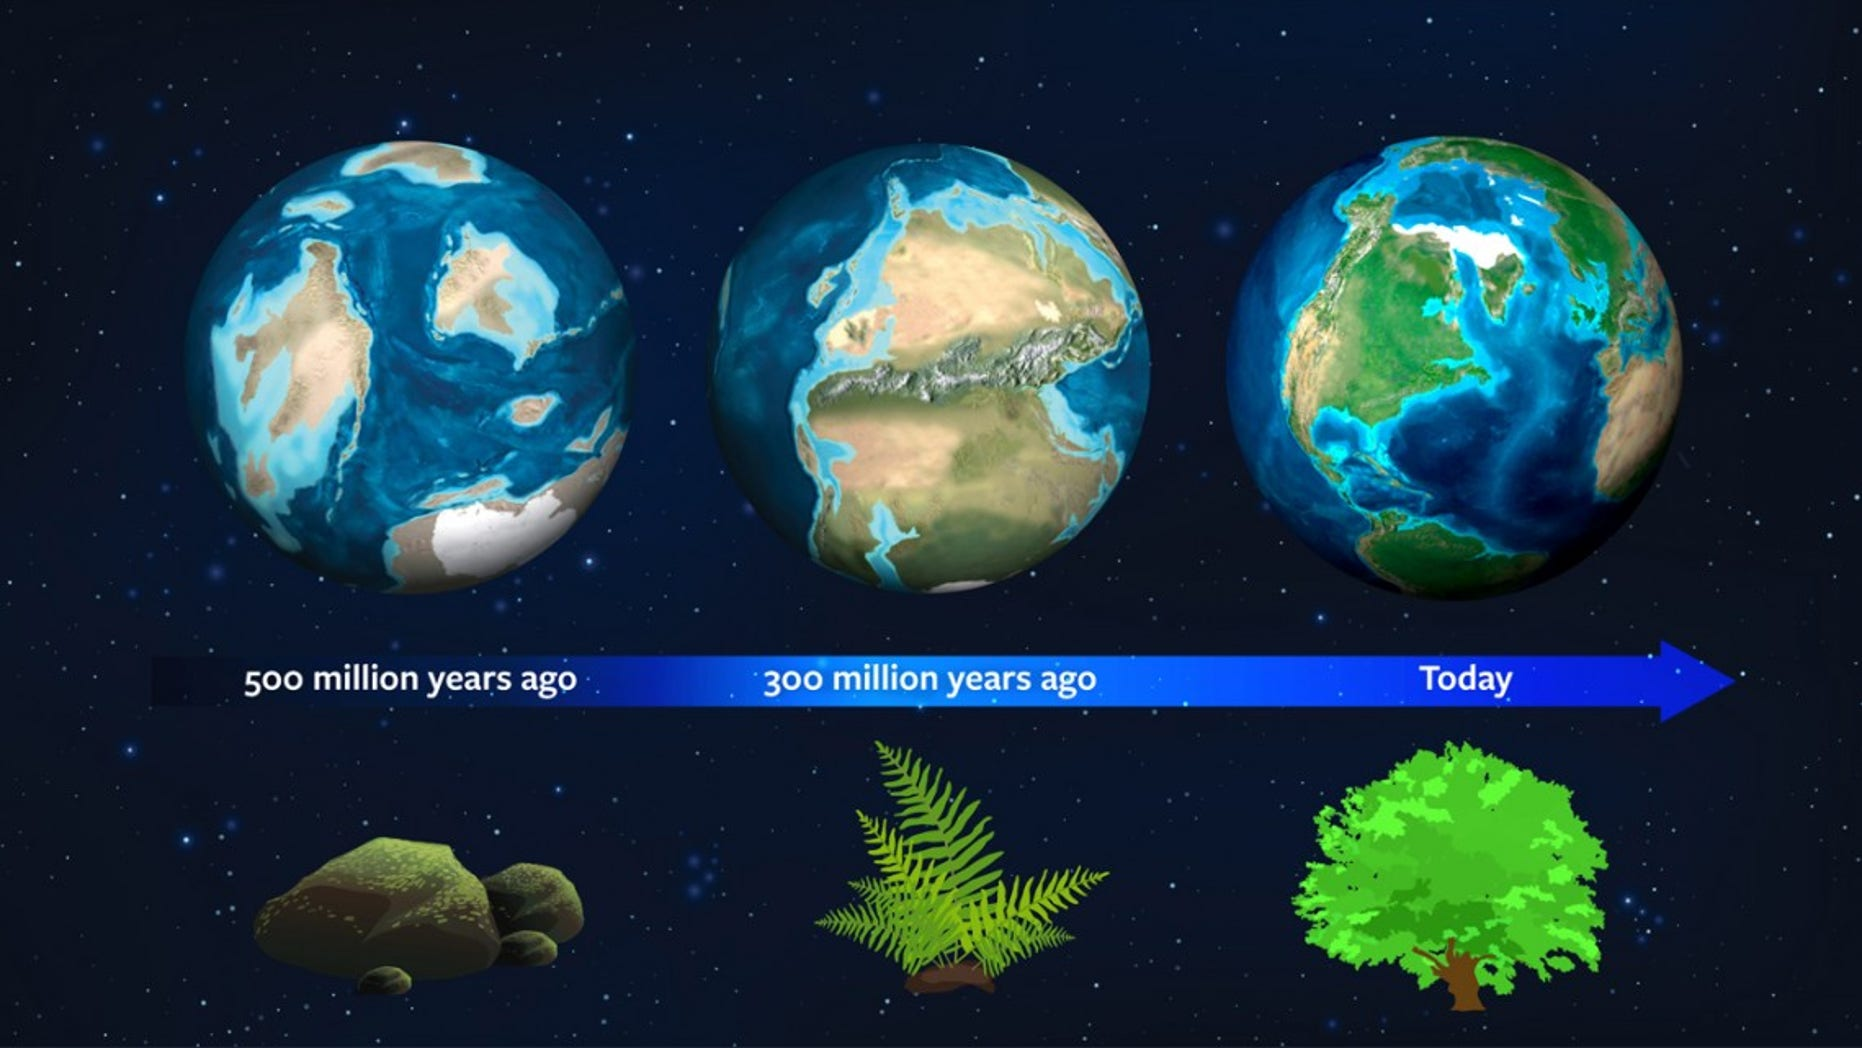 Earth's natural history may now serve as a guide for astronomers to spot exoplanets. About 500 million years ago, this planet had a different light signature due to the dominance of moss. About 300 million years ago, ferns dominated and mature plant forms rule today - strengthening our planet's light signature (Jack O'Malley-James/Wendy Kenigsberg/Brand Communications).